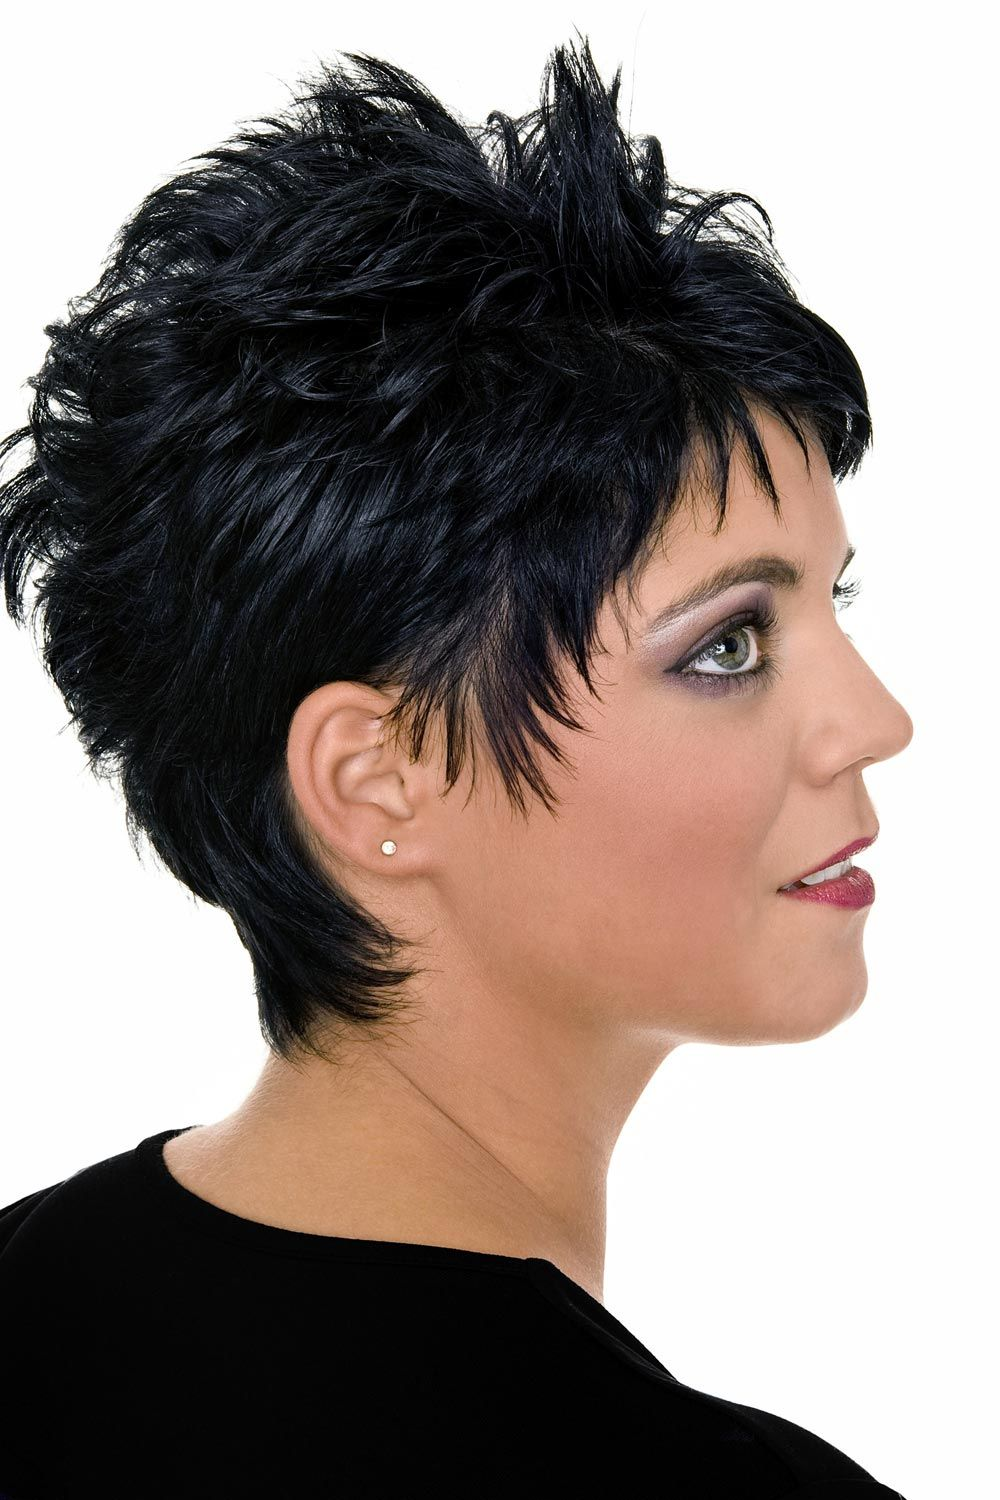 Schicker Pixie Cut In 2019 Hair Styles Hair Short Hair Styles